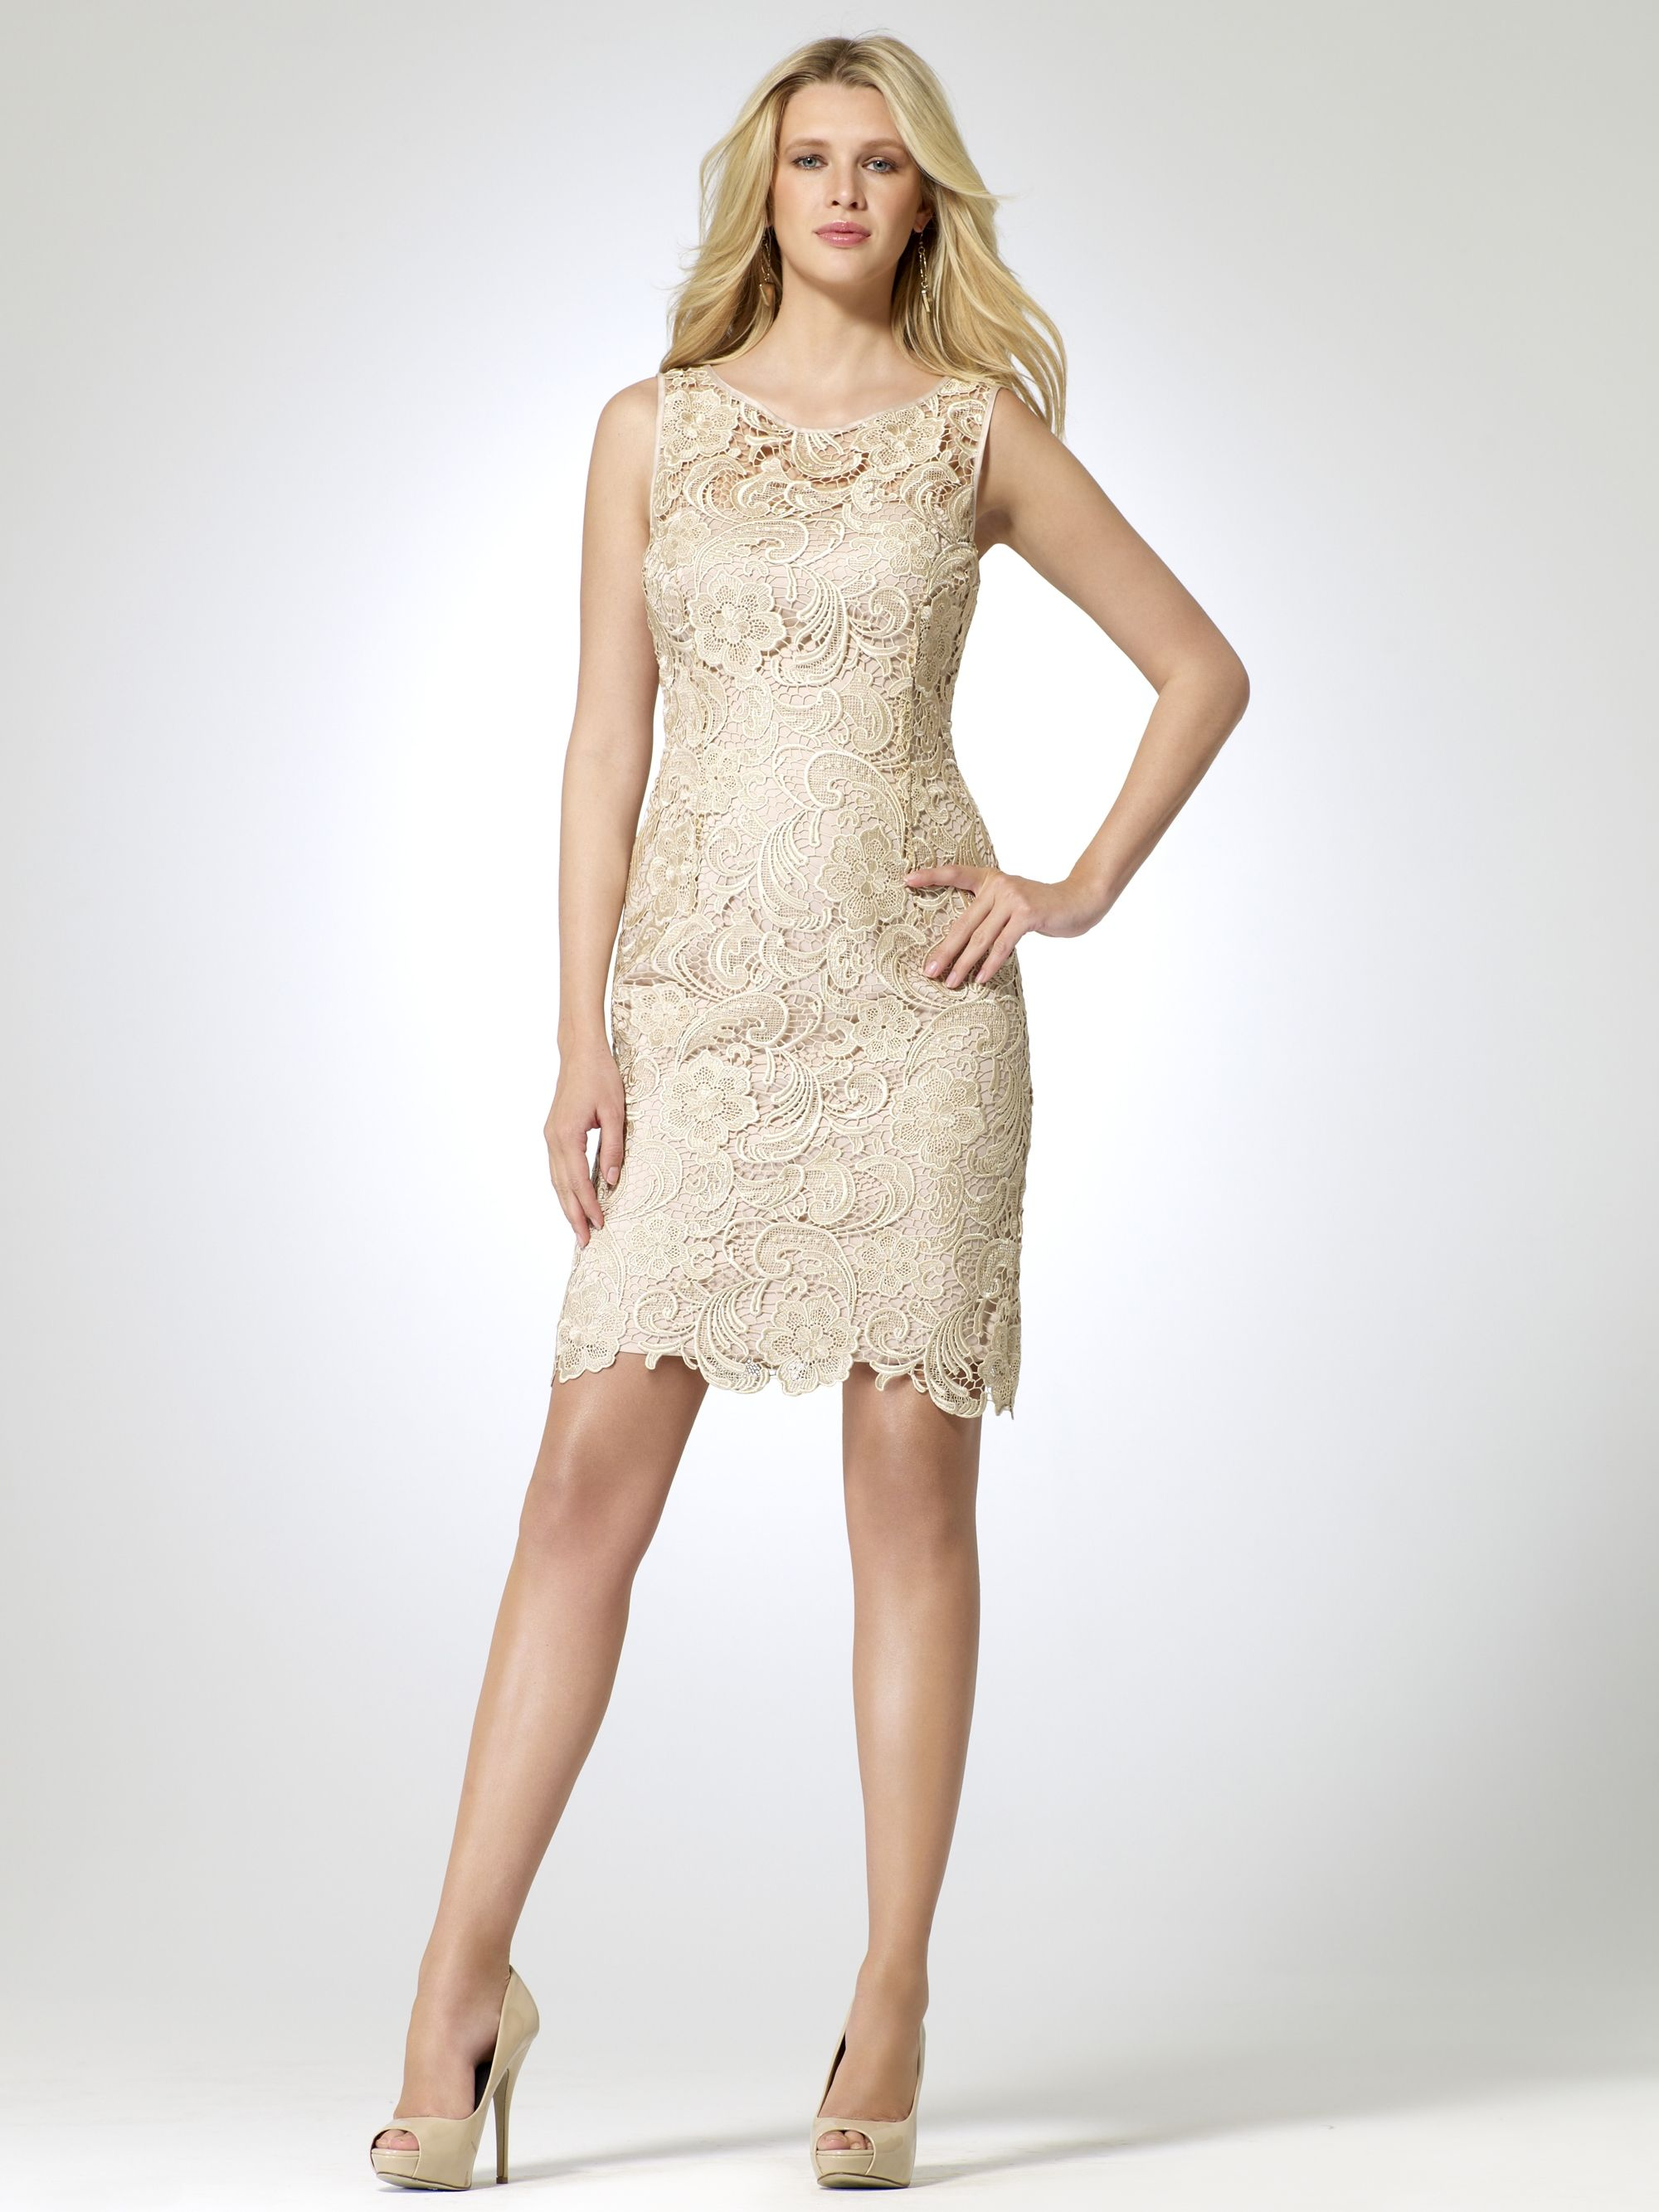 Summer dresses to wear to a wedding  Neutral Lace Sheath Dress  Wedding  Pinterest  Lace sheath dress